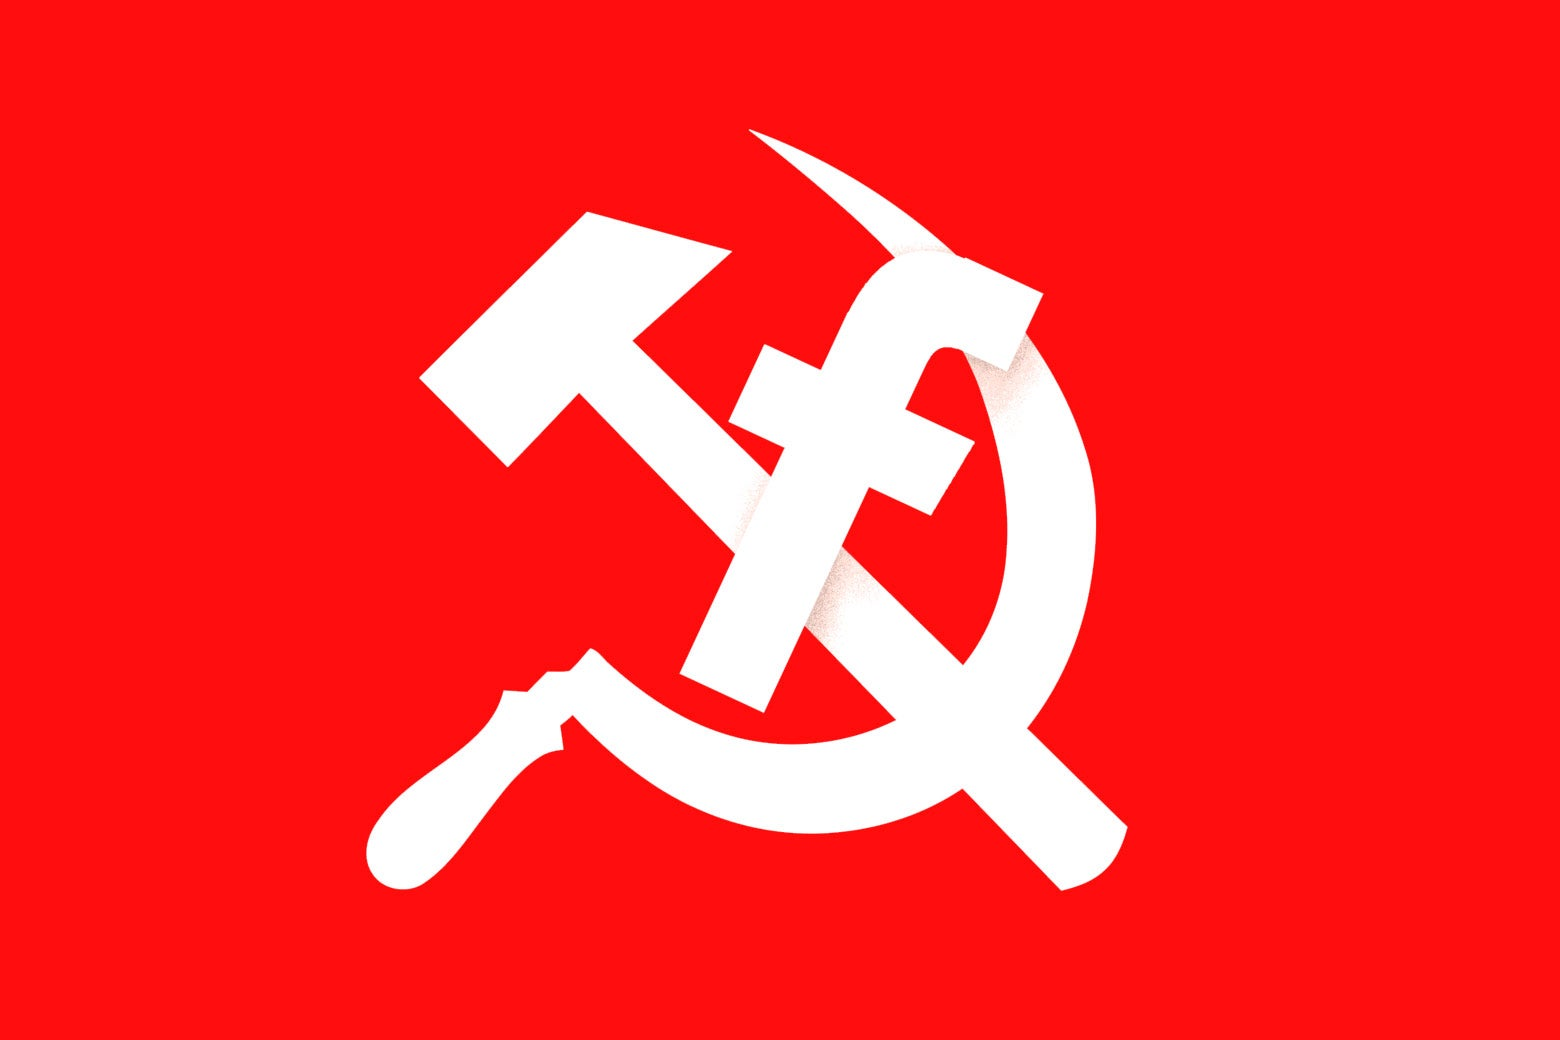 Hammer and sickle with Facebook 'F' symbol.